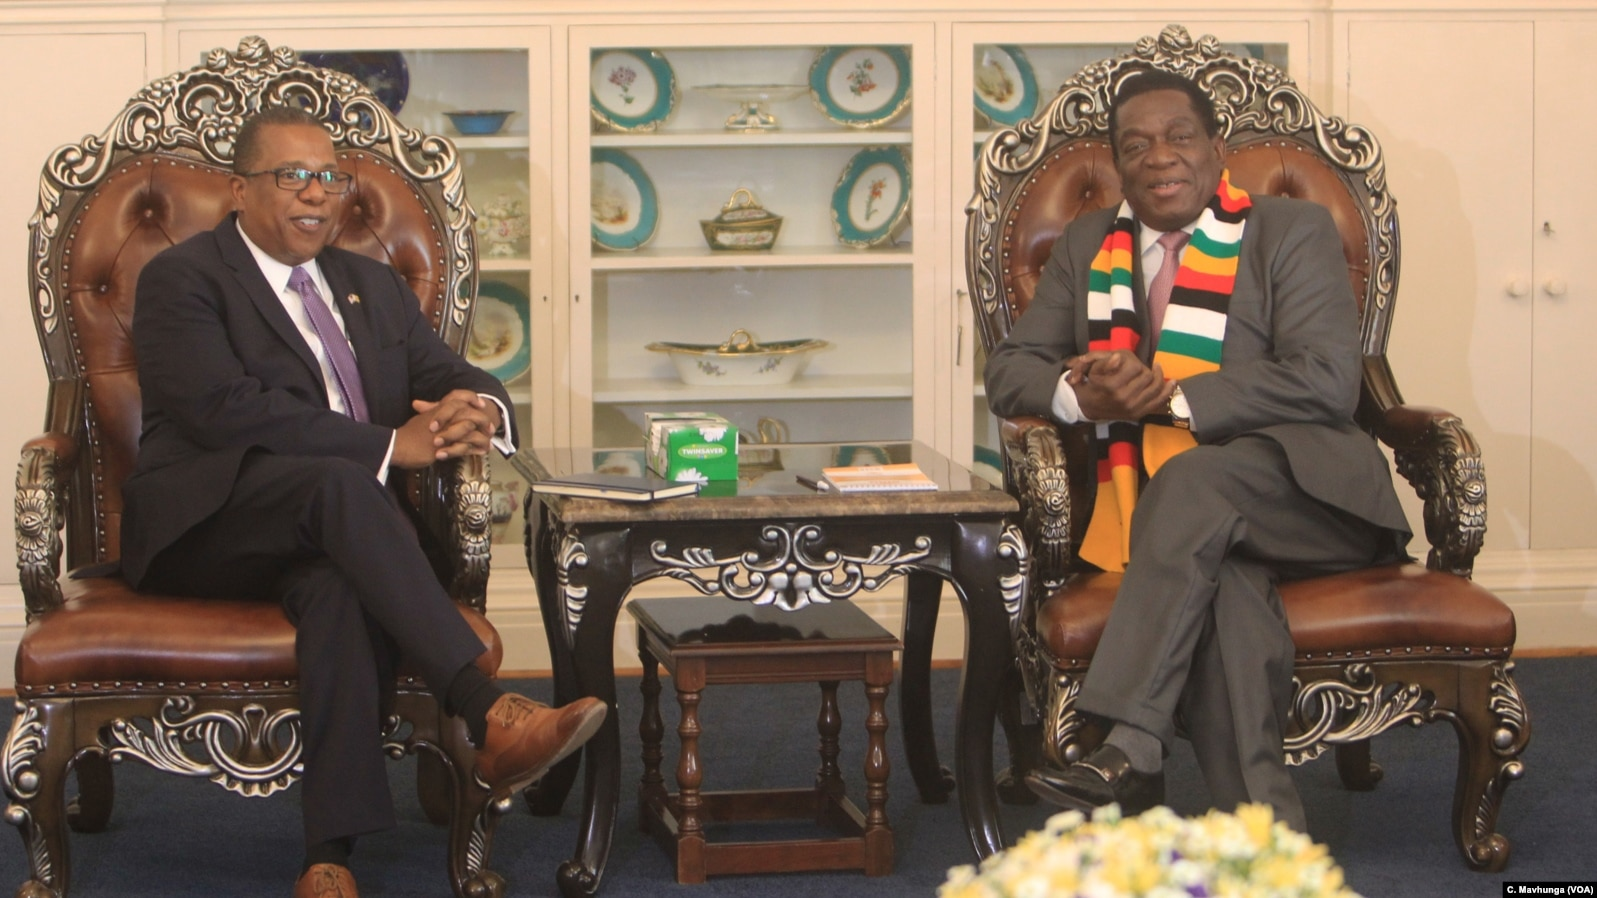 US Ambassador to Zimbabwe: Sanctions Removal Linked to Genuine Reforms